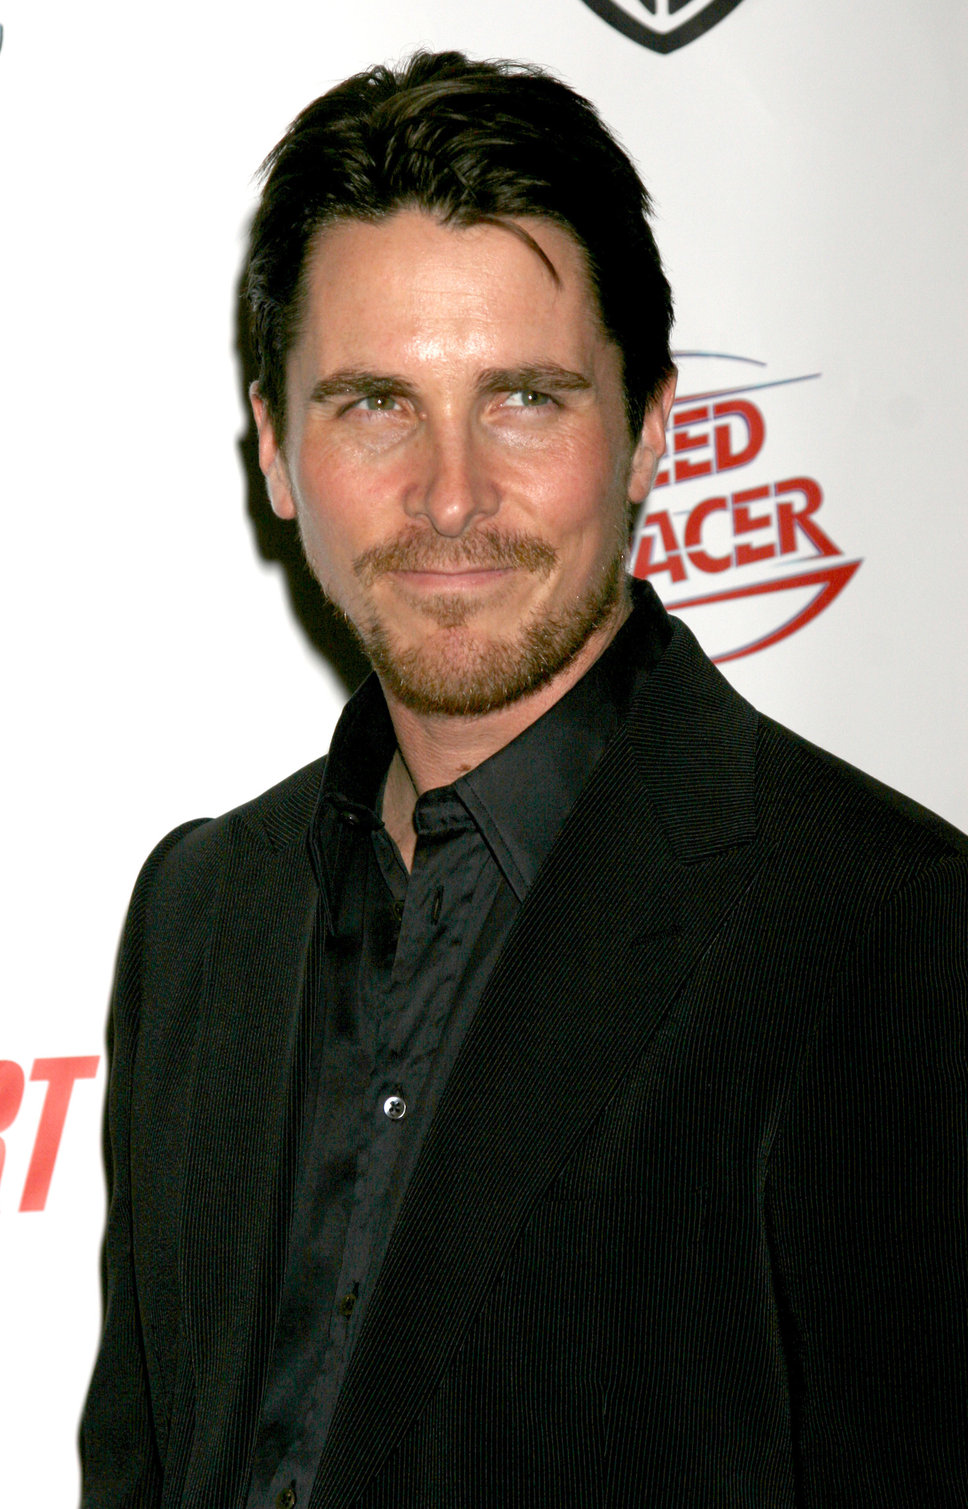 star-24-tv-forbes-Christian-Bale